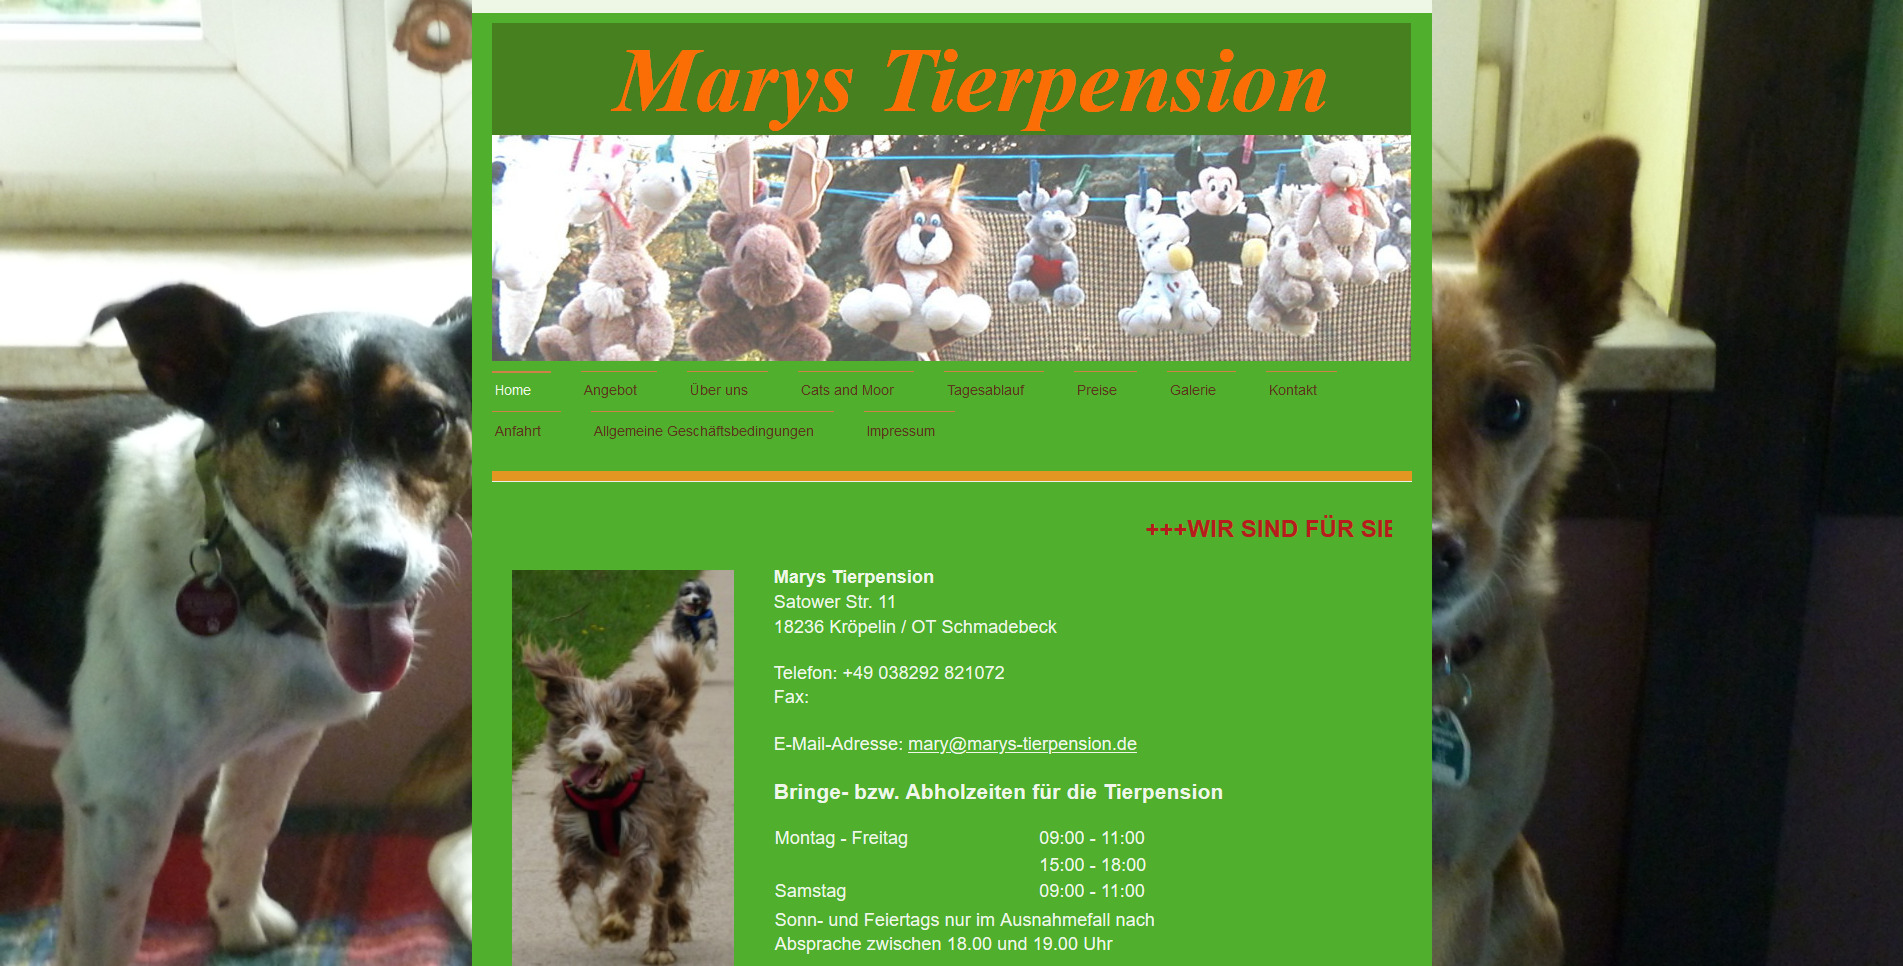 Marys Tierpension